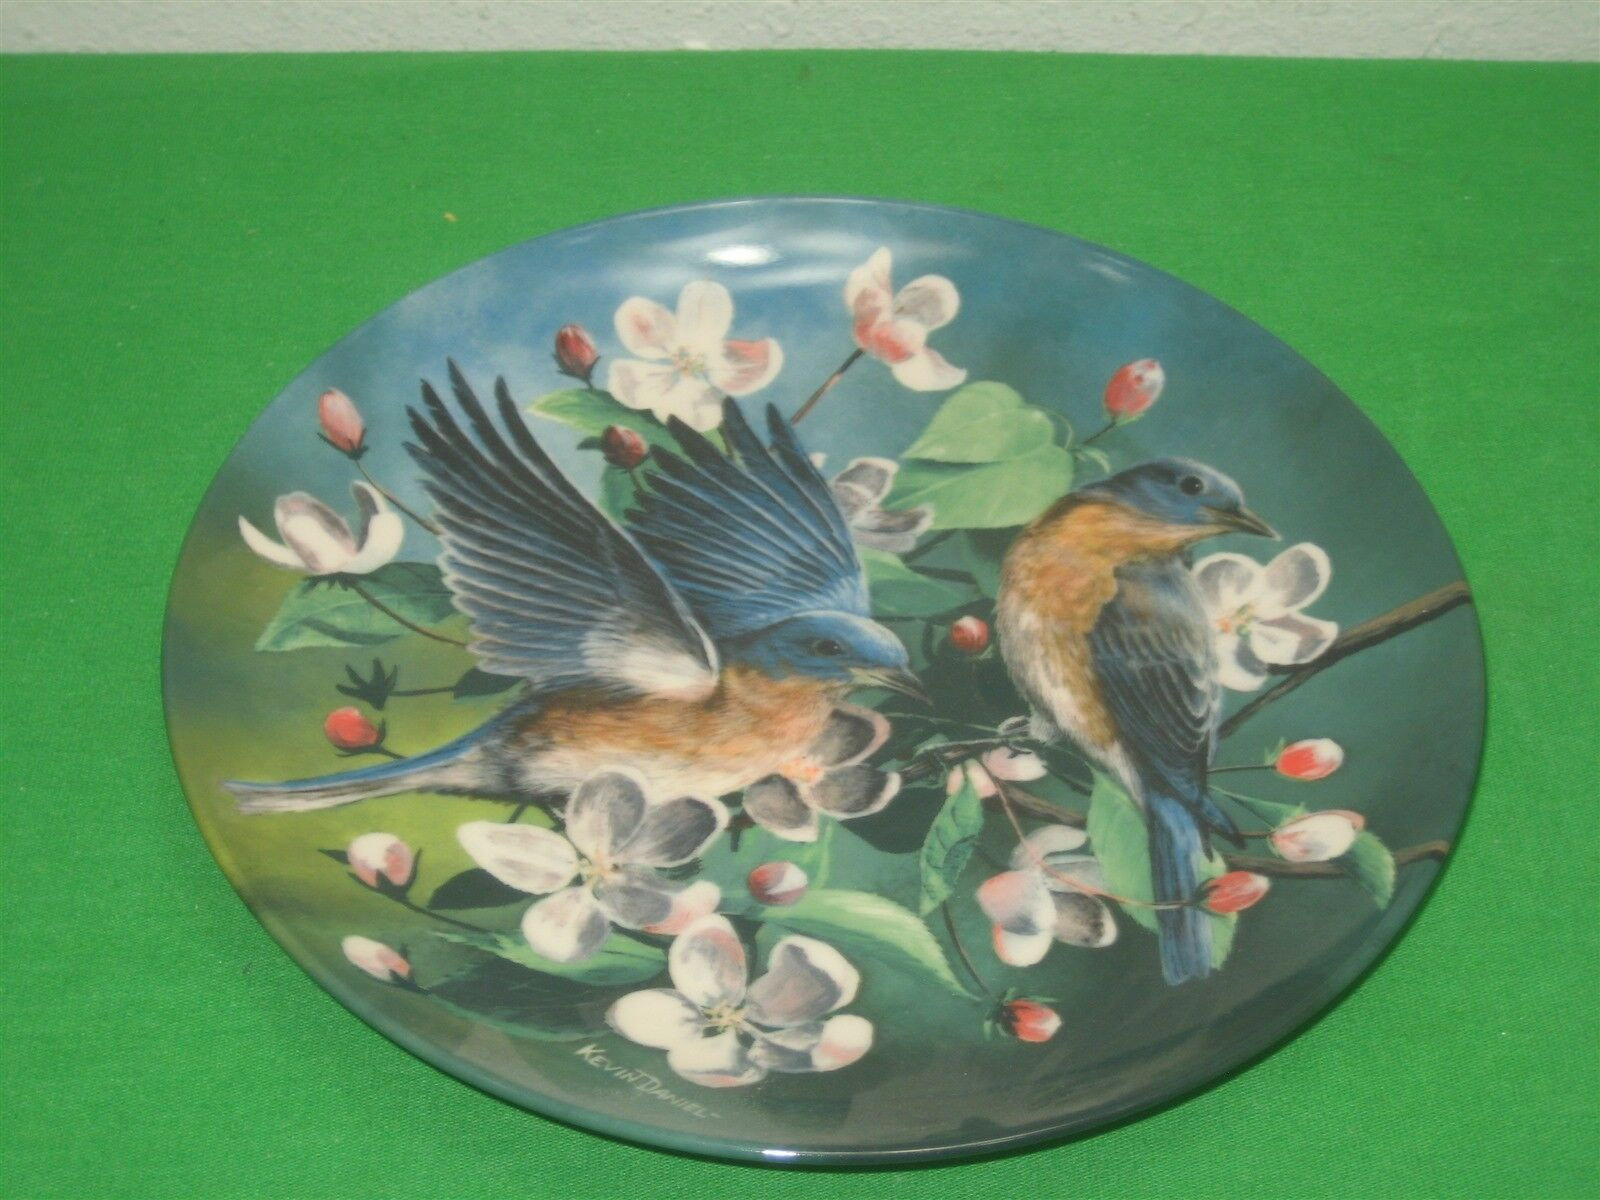 The Bluebird Collector Plate Signed 1986 Knowles Kevin Daniel Plate No 9245E